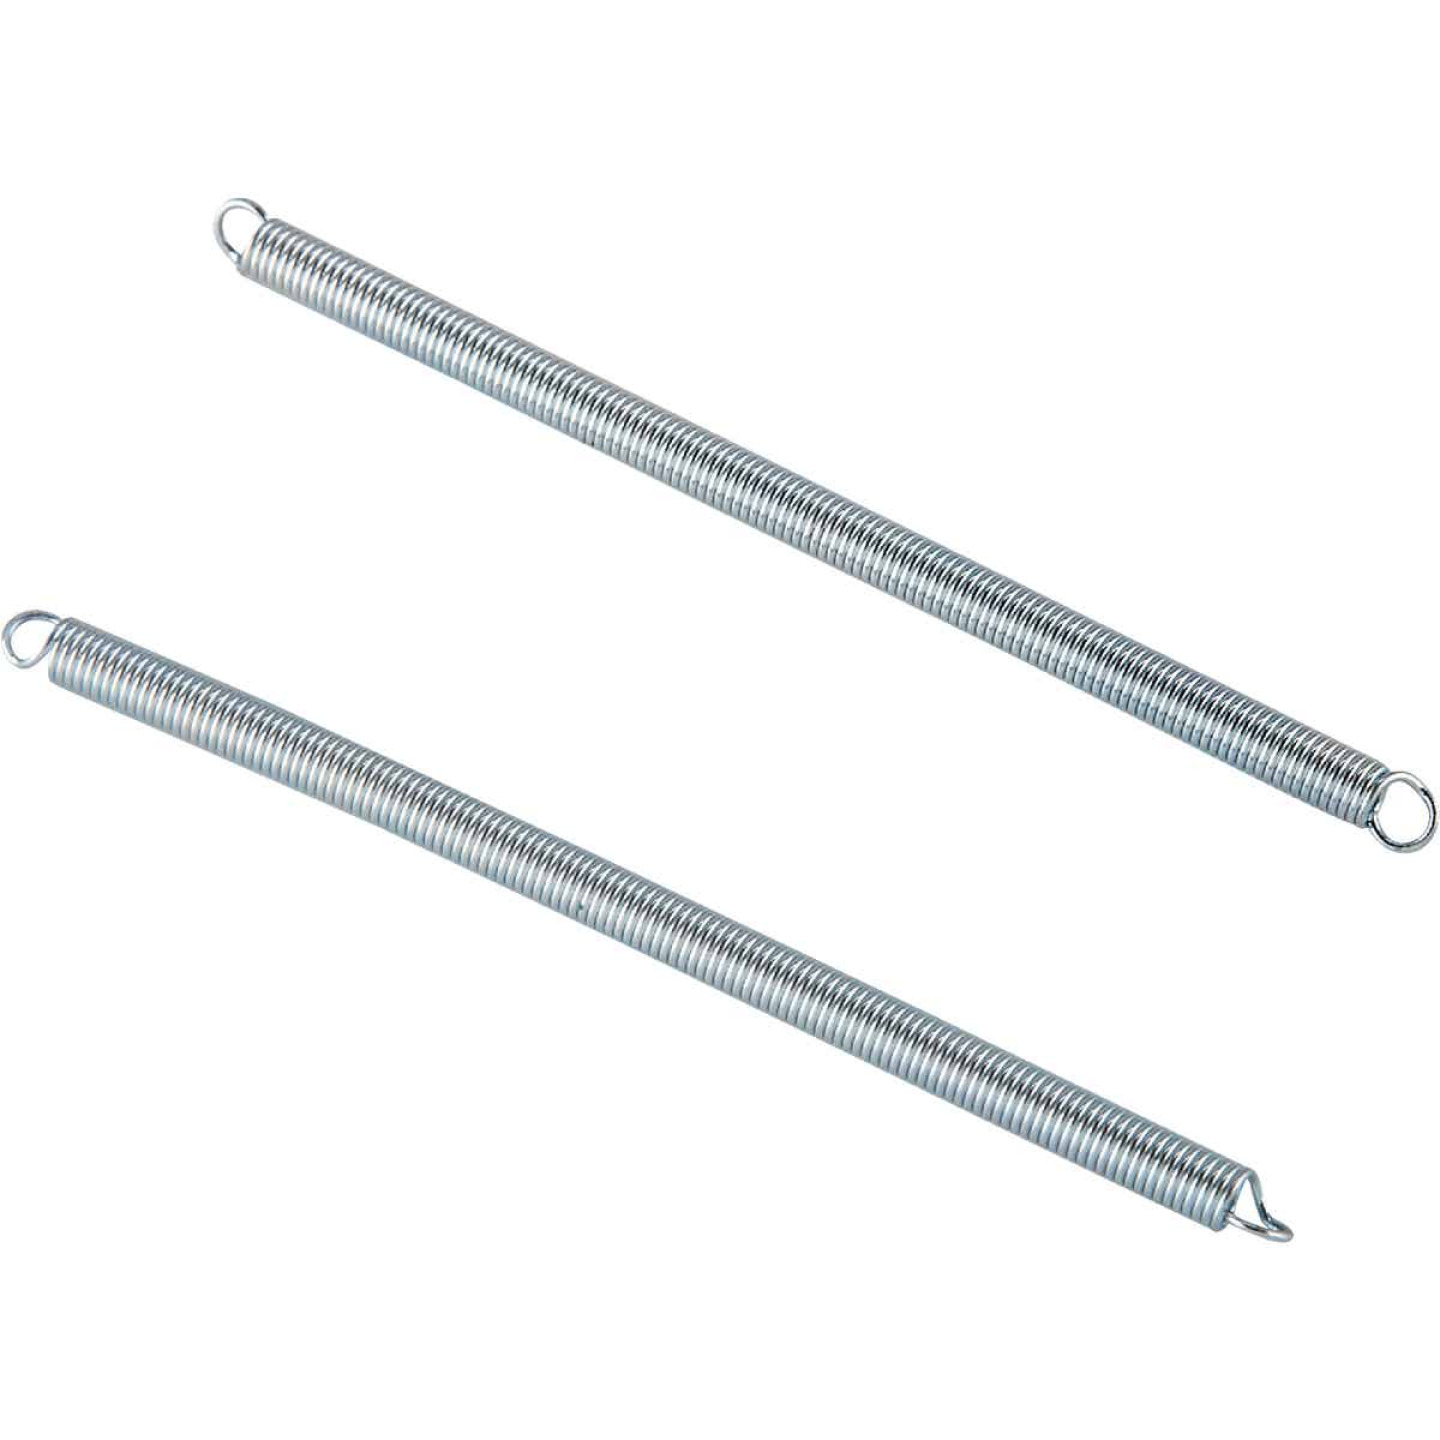 Century Spring 5-1/2 In. x 3/8 In. Extension Spring (2 Count) Image 1